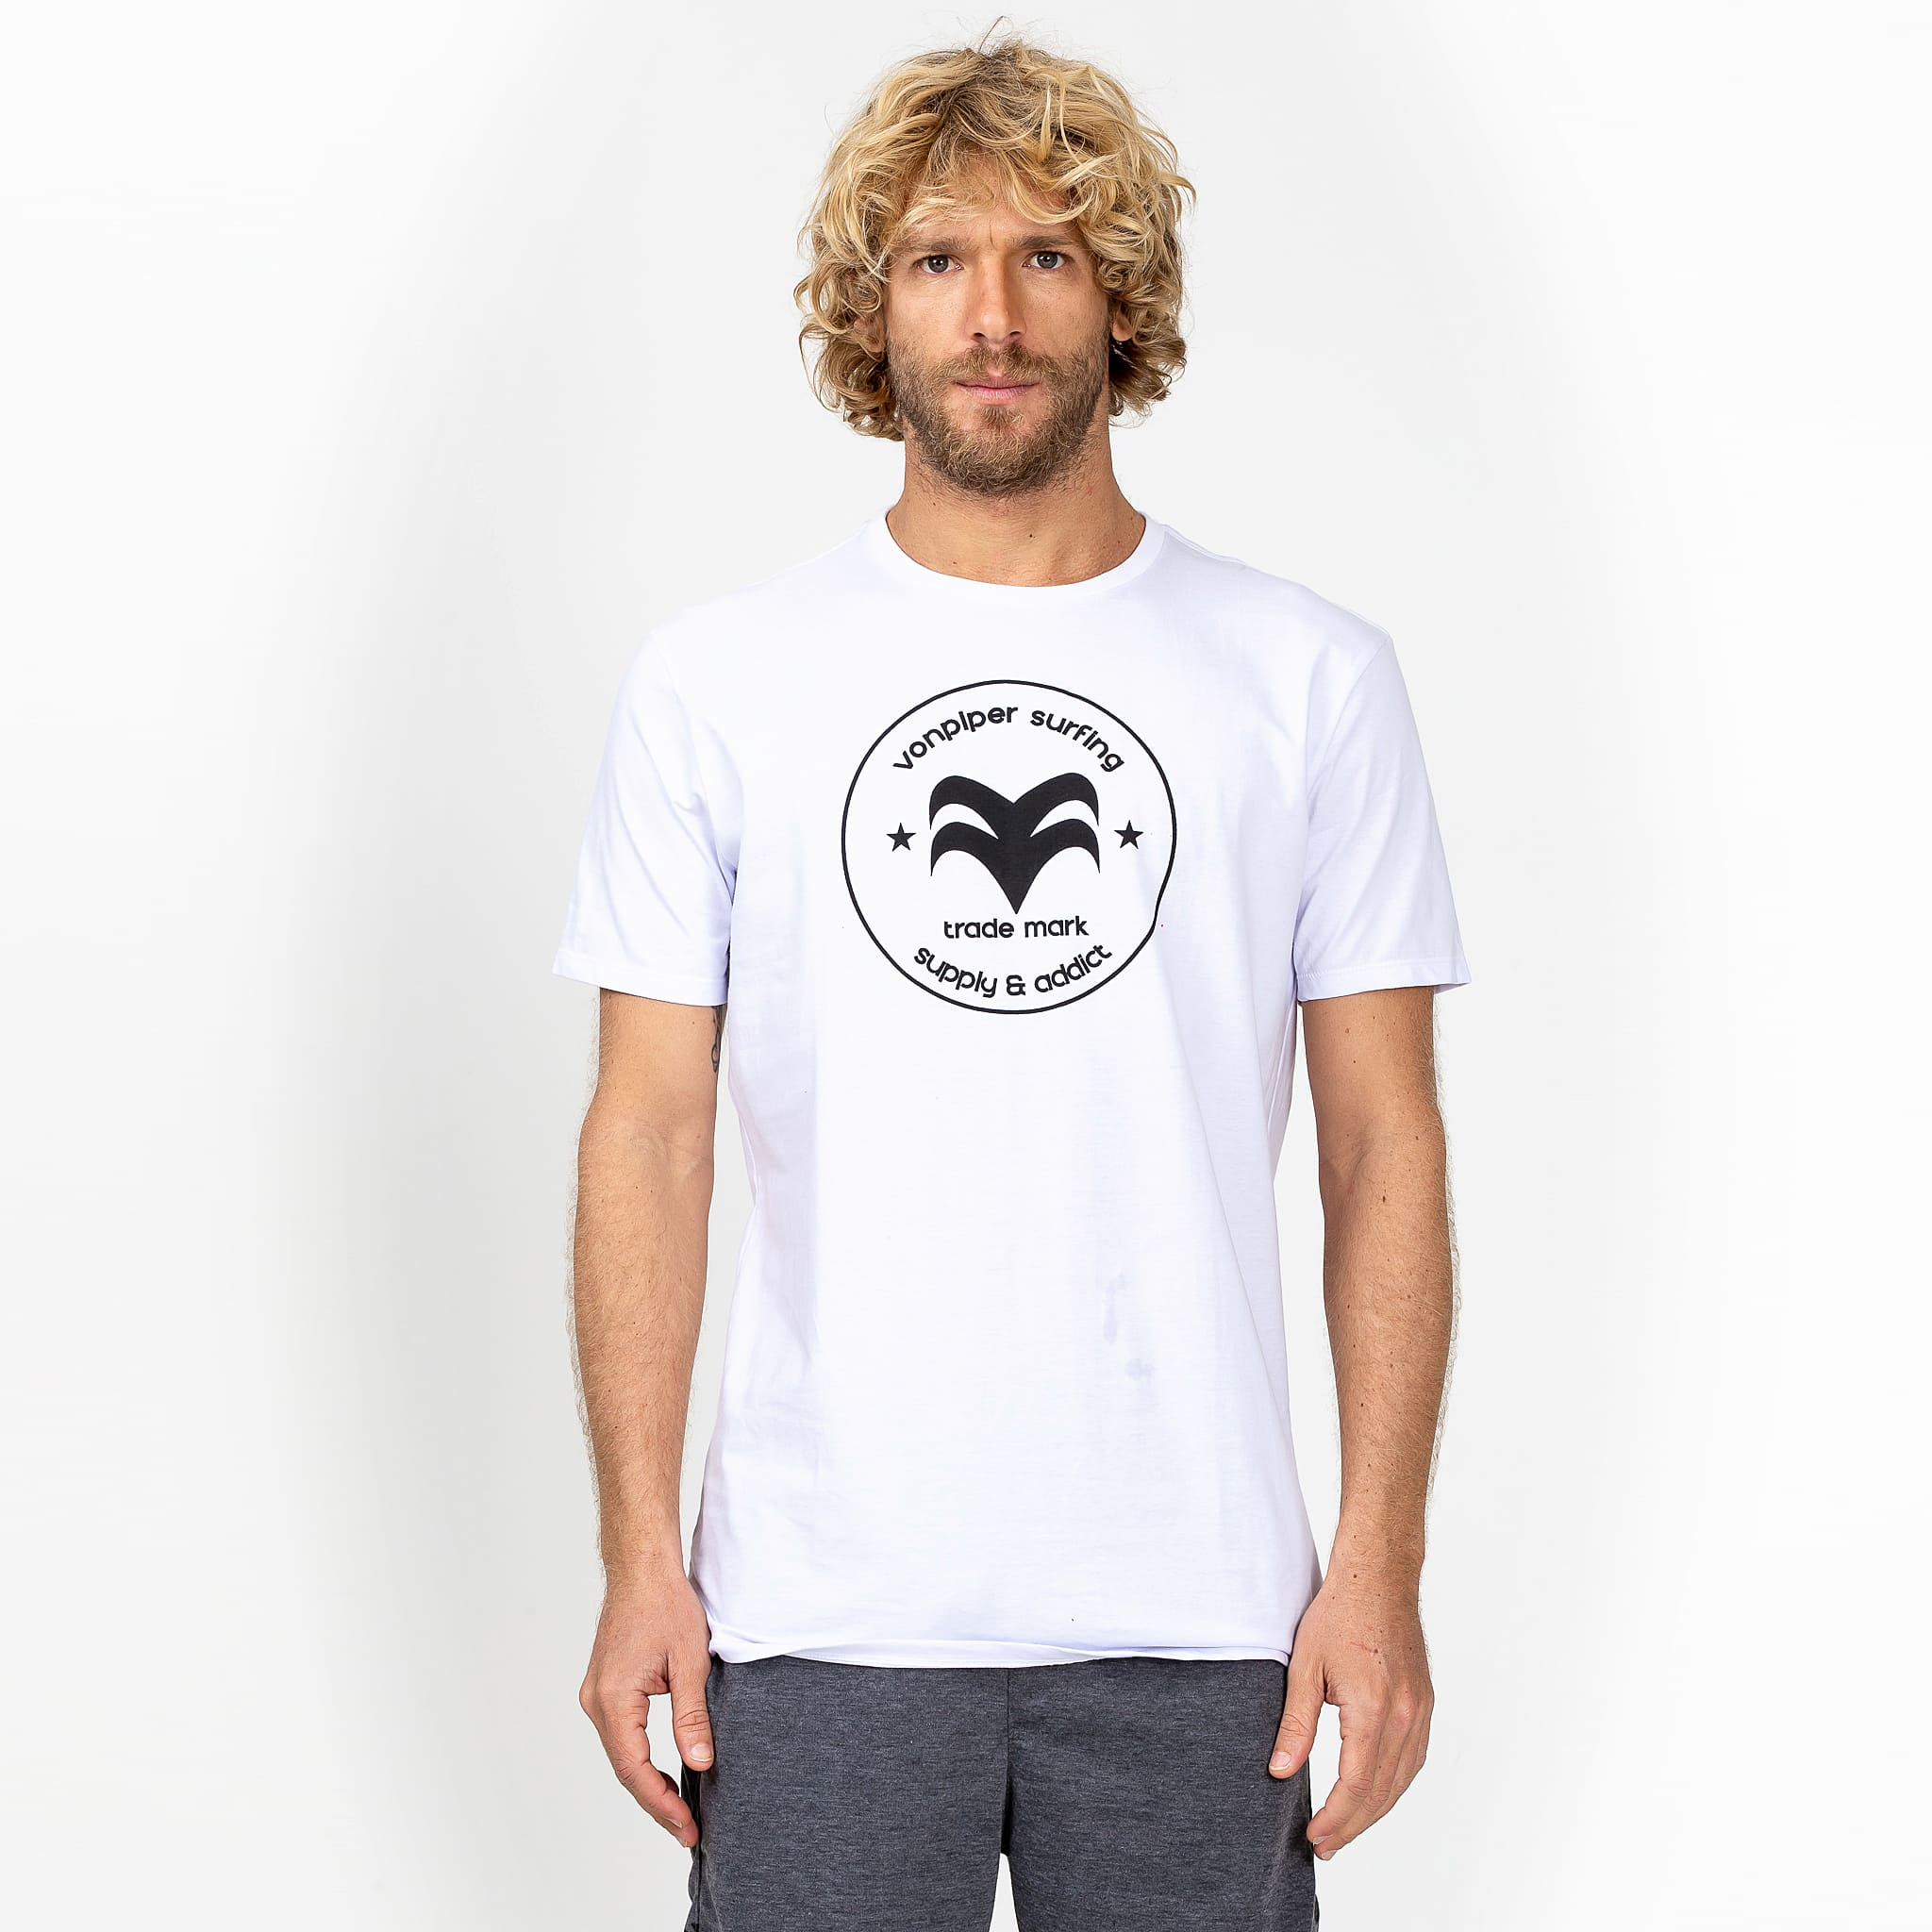 T-Shirt Surfing - Cópia (1)